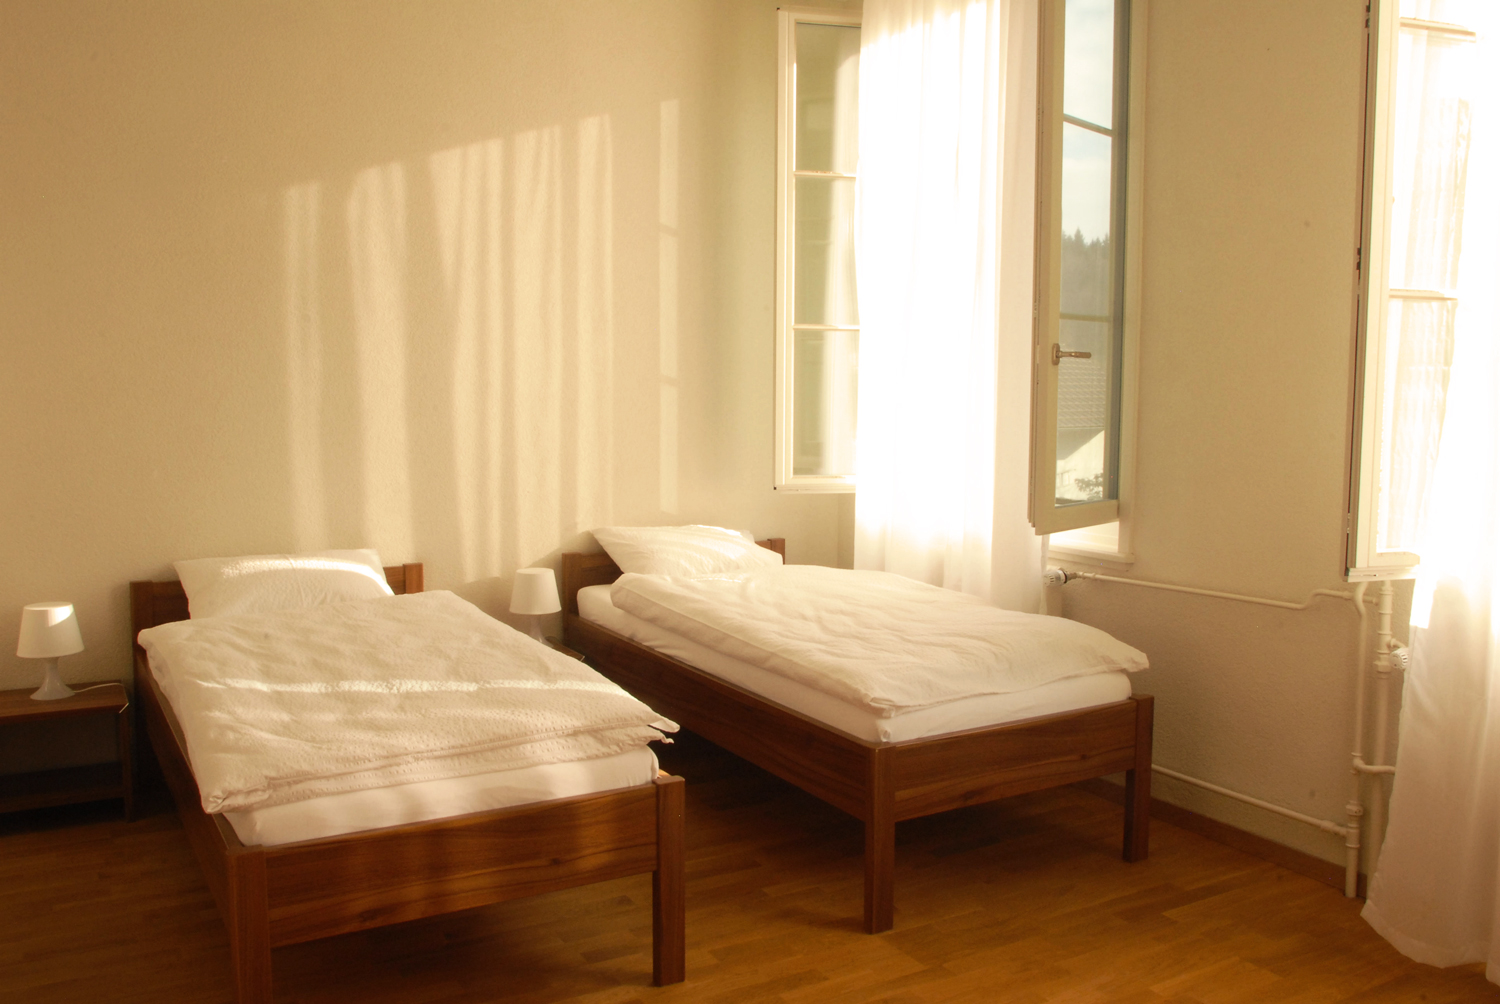 The Landguet Ried Center offers comfortable rooms - an invitation to deep relaxation.